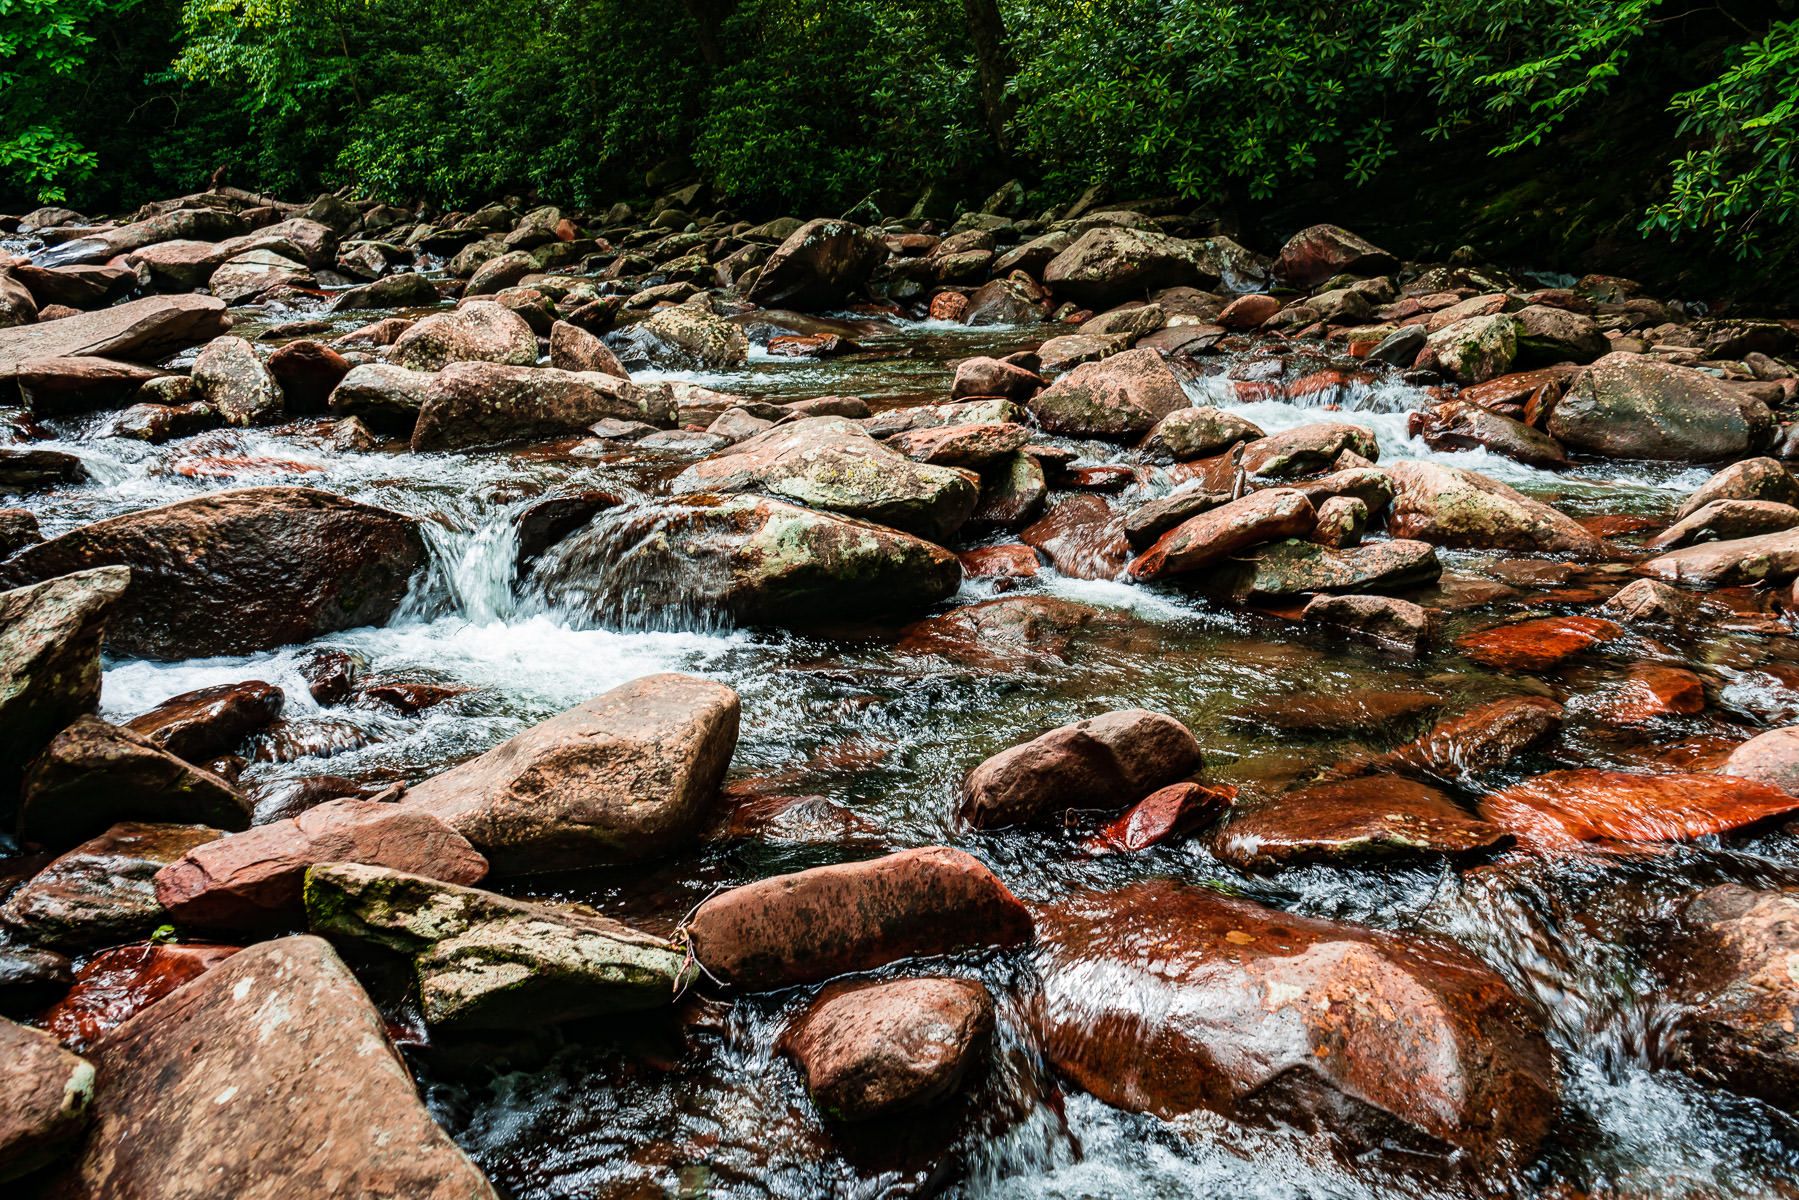 A rocky stream in the Great Smoky Mountains National Park, Tennessee.